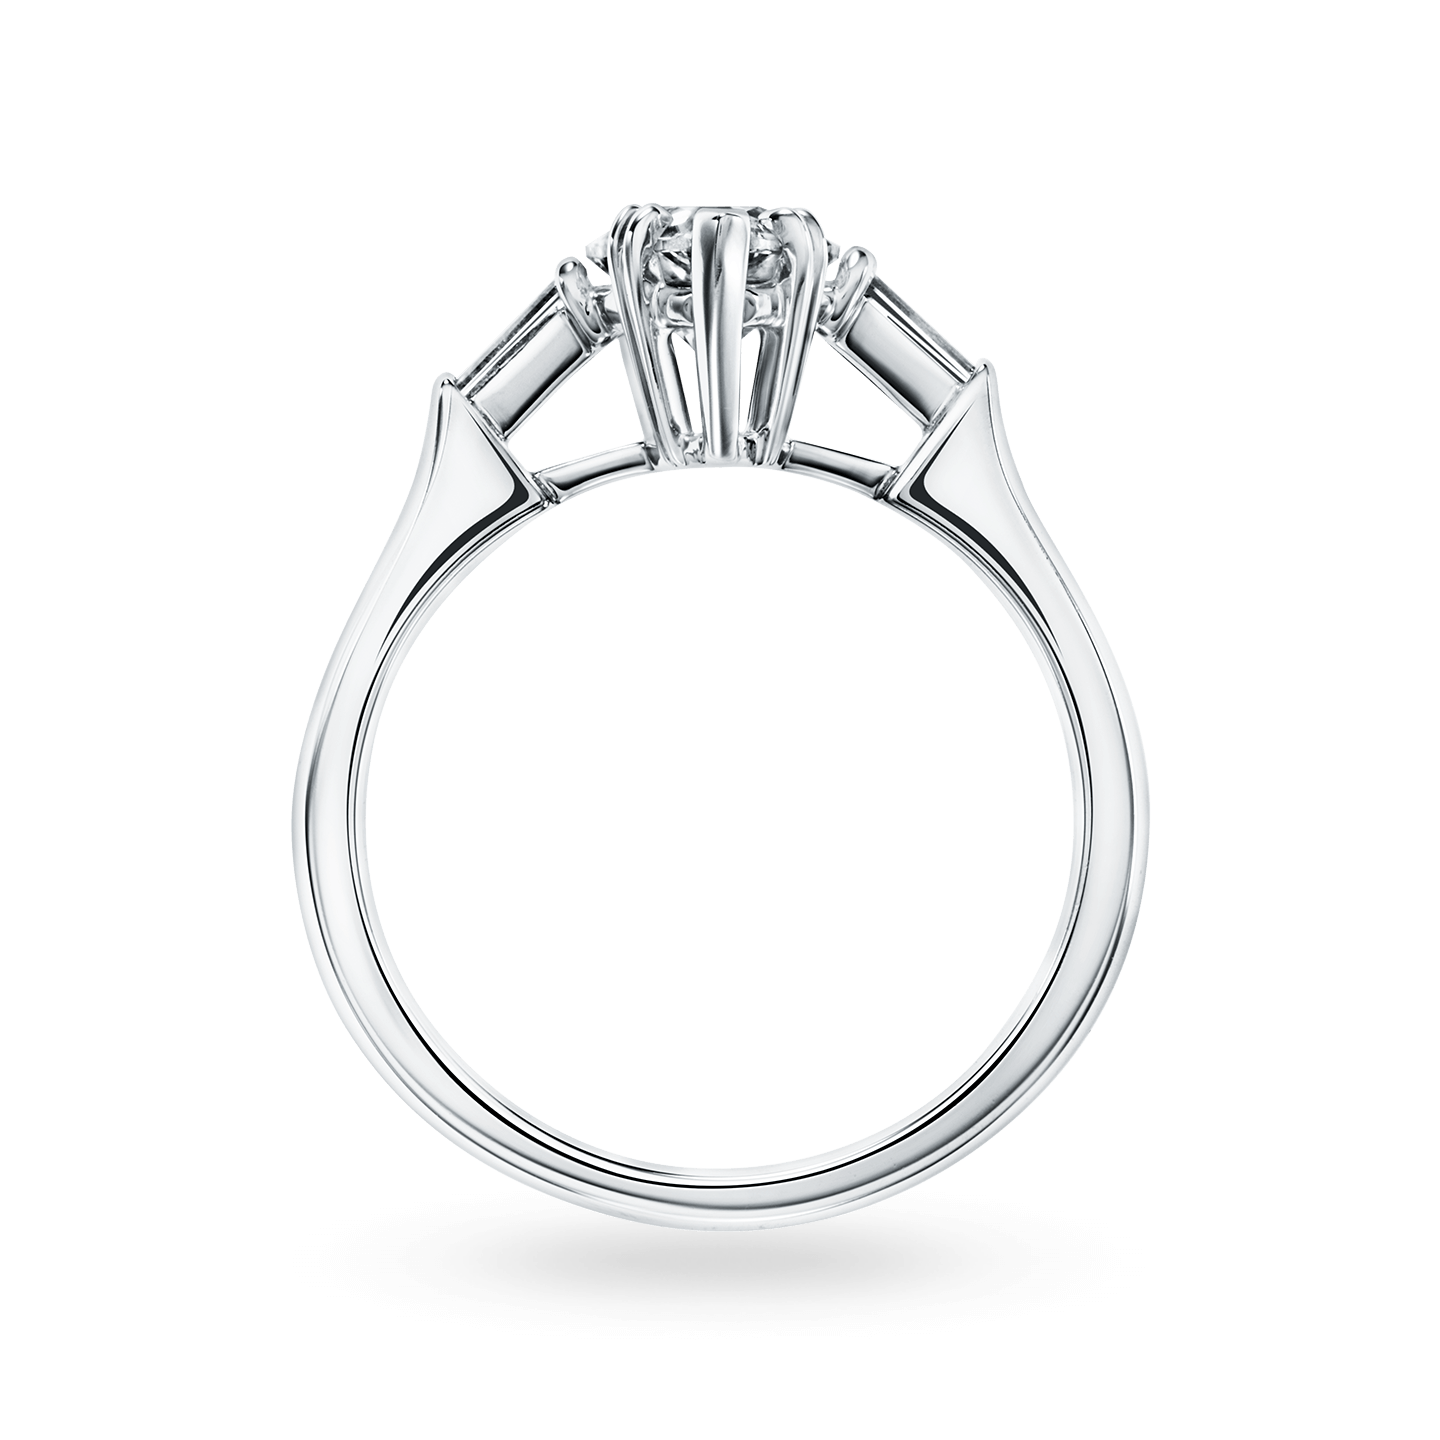 Classic Winston Pear-Shaped Engagement Ring with Tapered Baguette Side Stones, Product Image 2